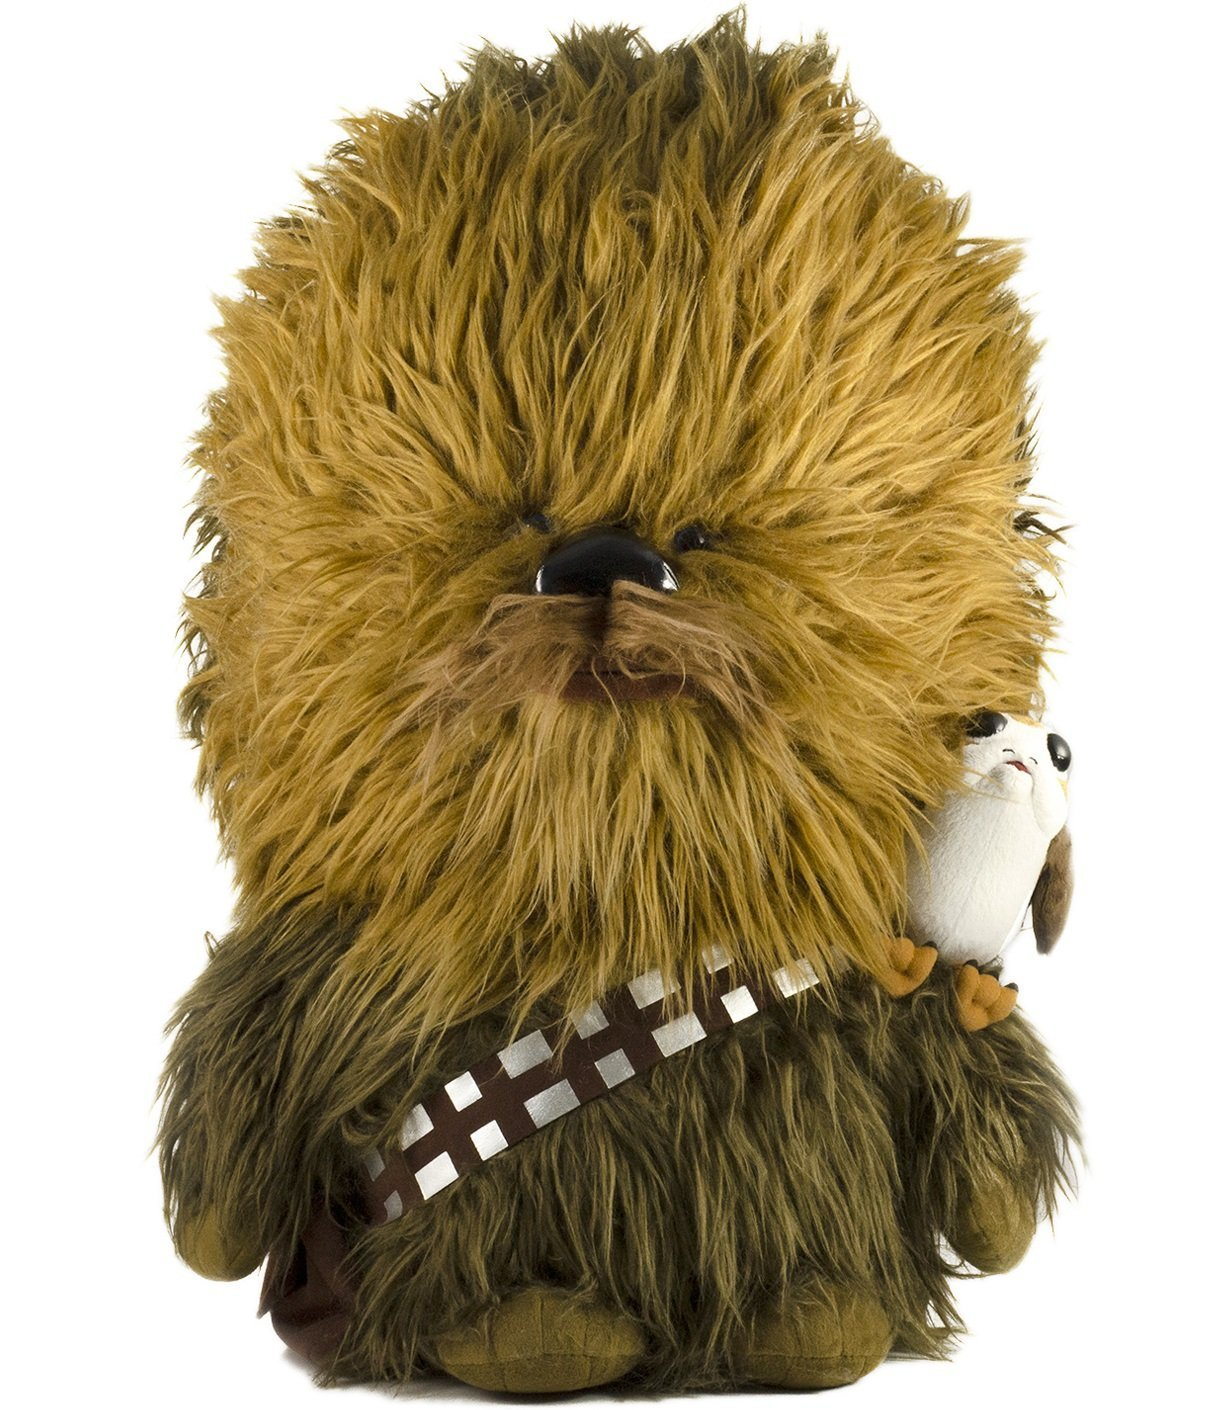 Star Wars The Last Jedi Chewbacca Talking Plush Toy